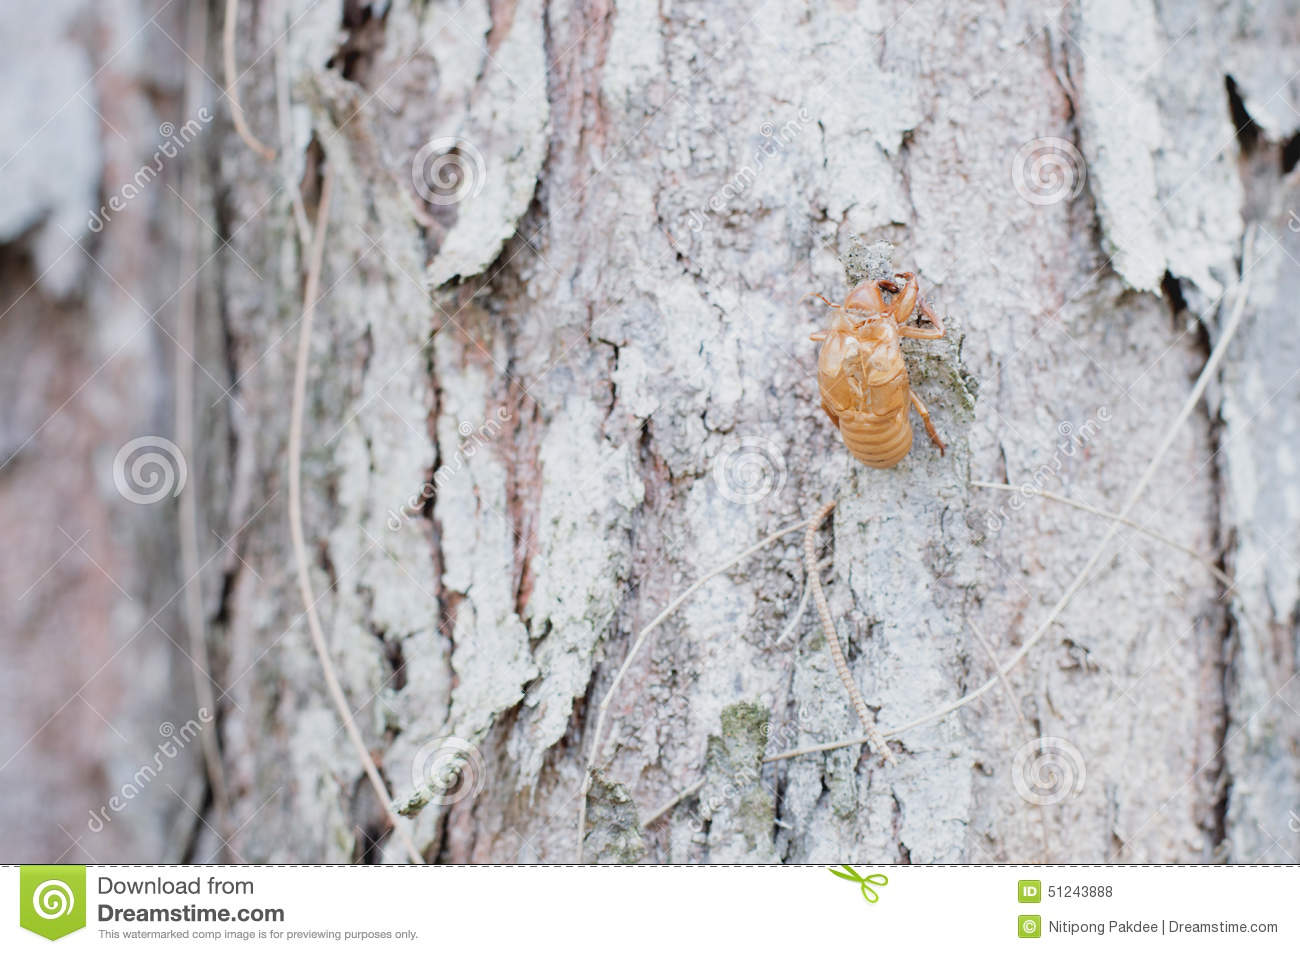 tree insects pictures wallpaper - photo #8